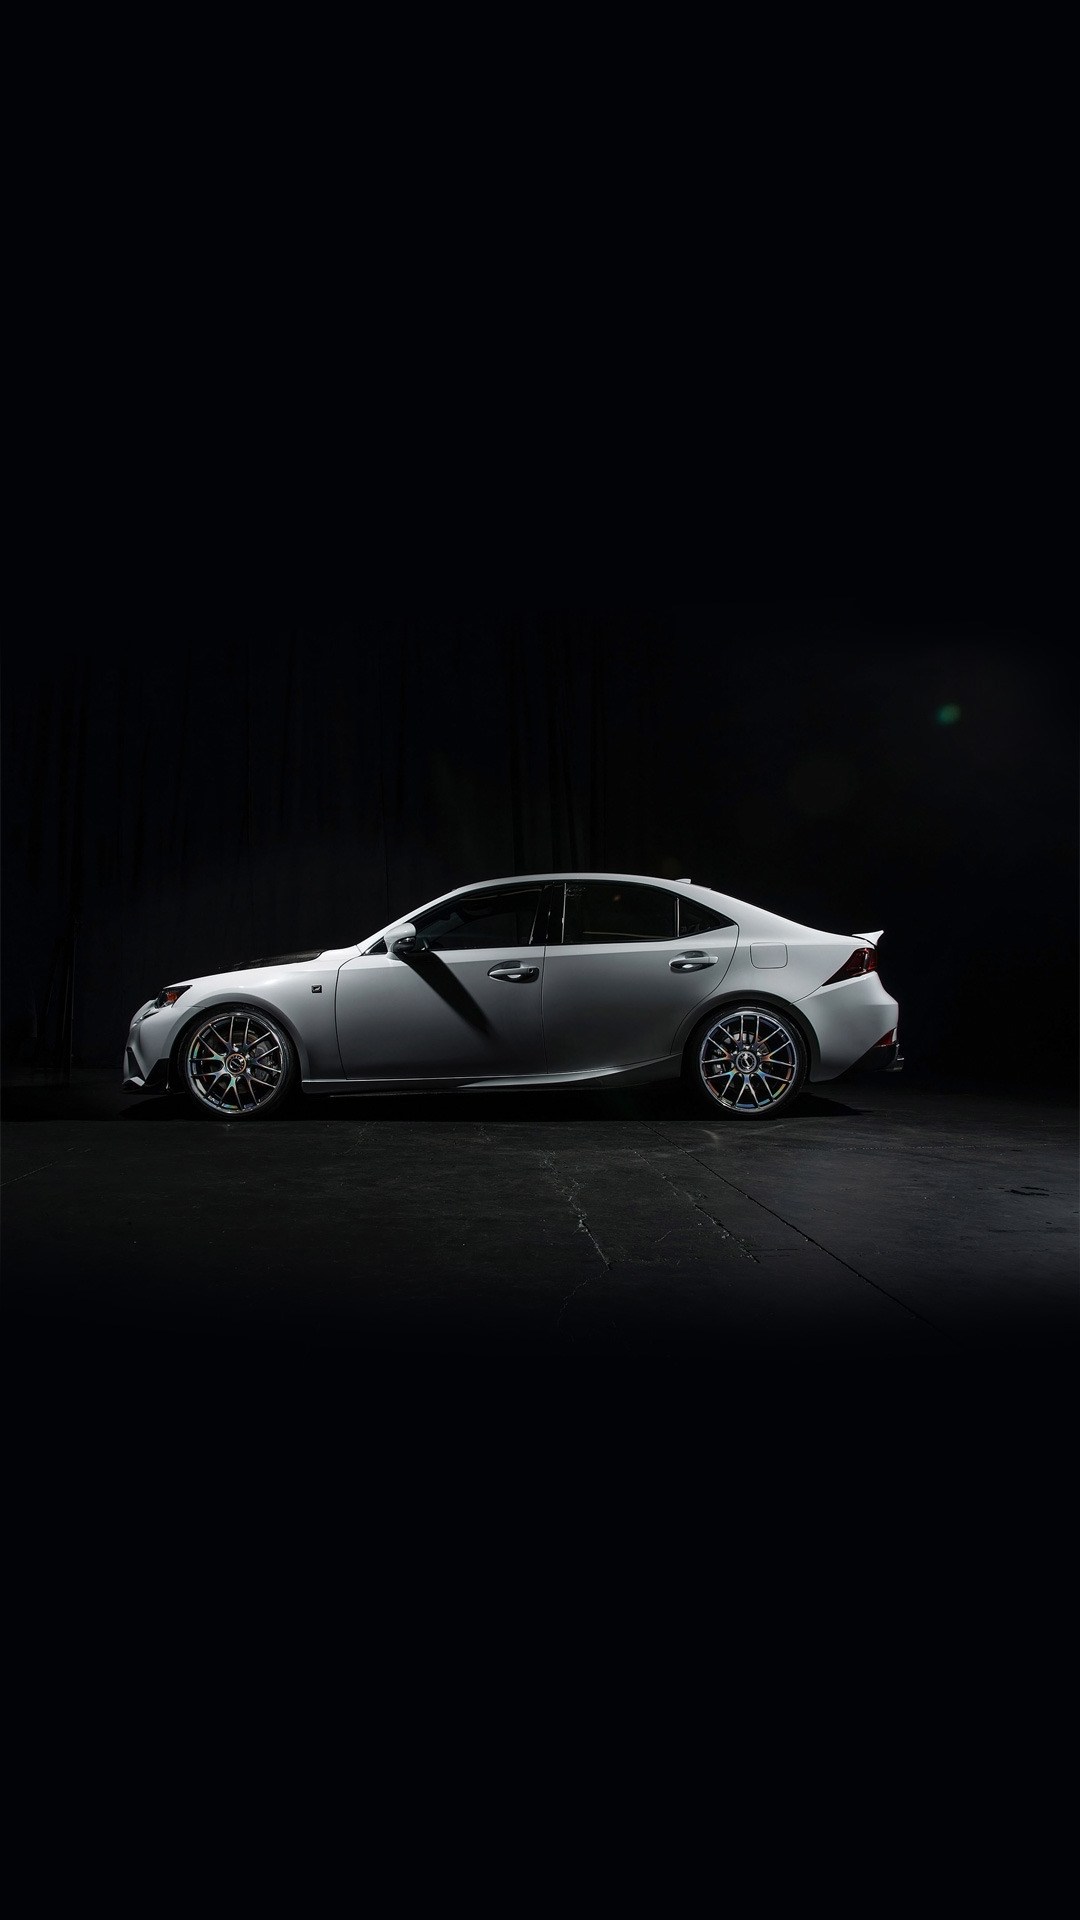 lexus best htc one wallpapers free and easy to download